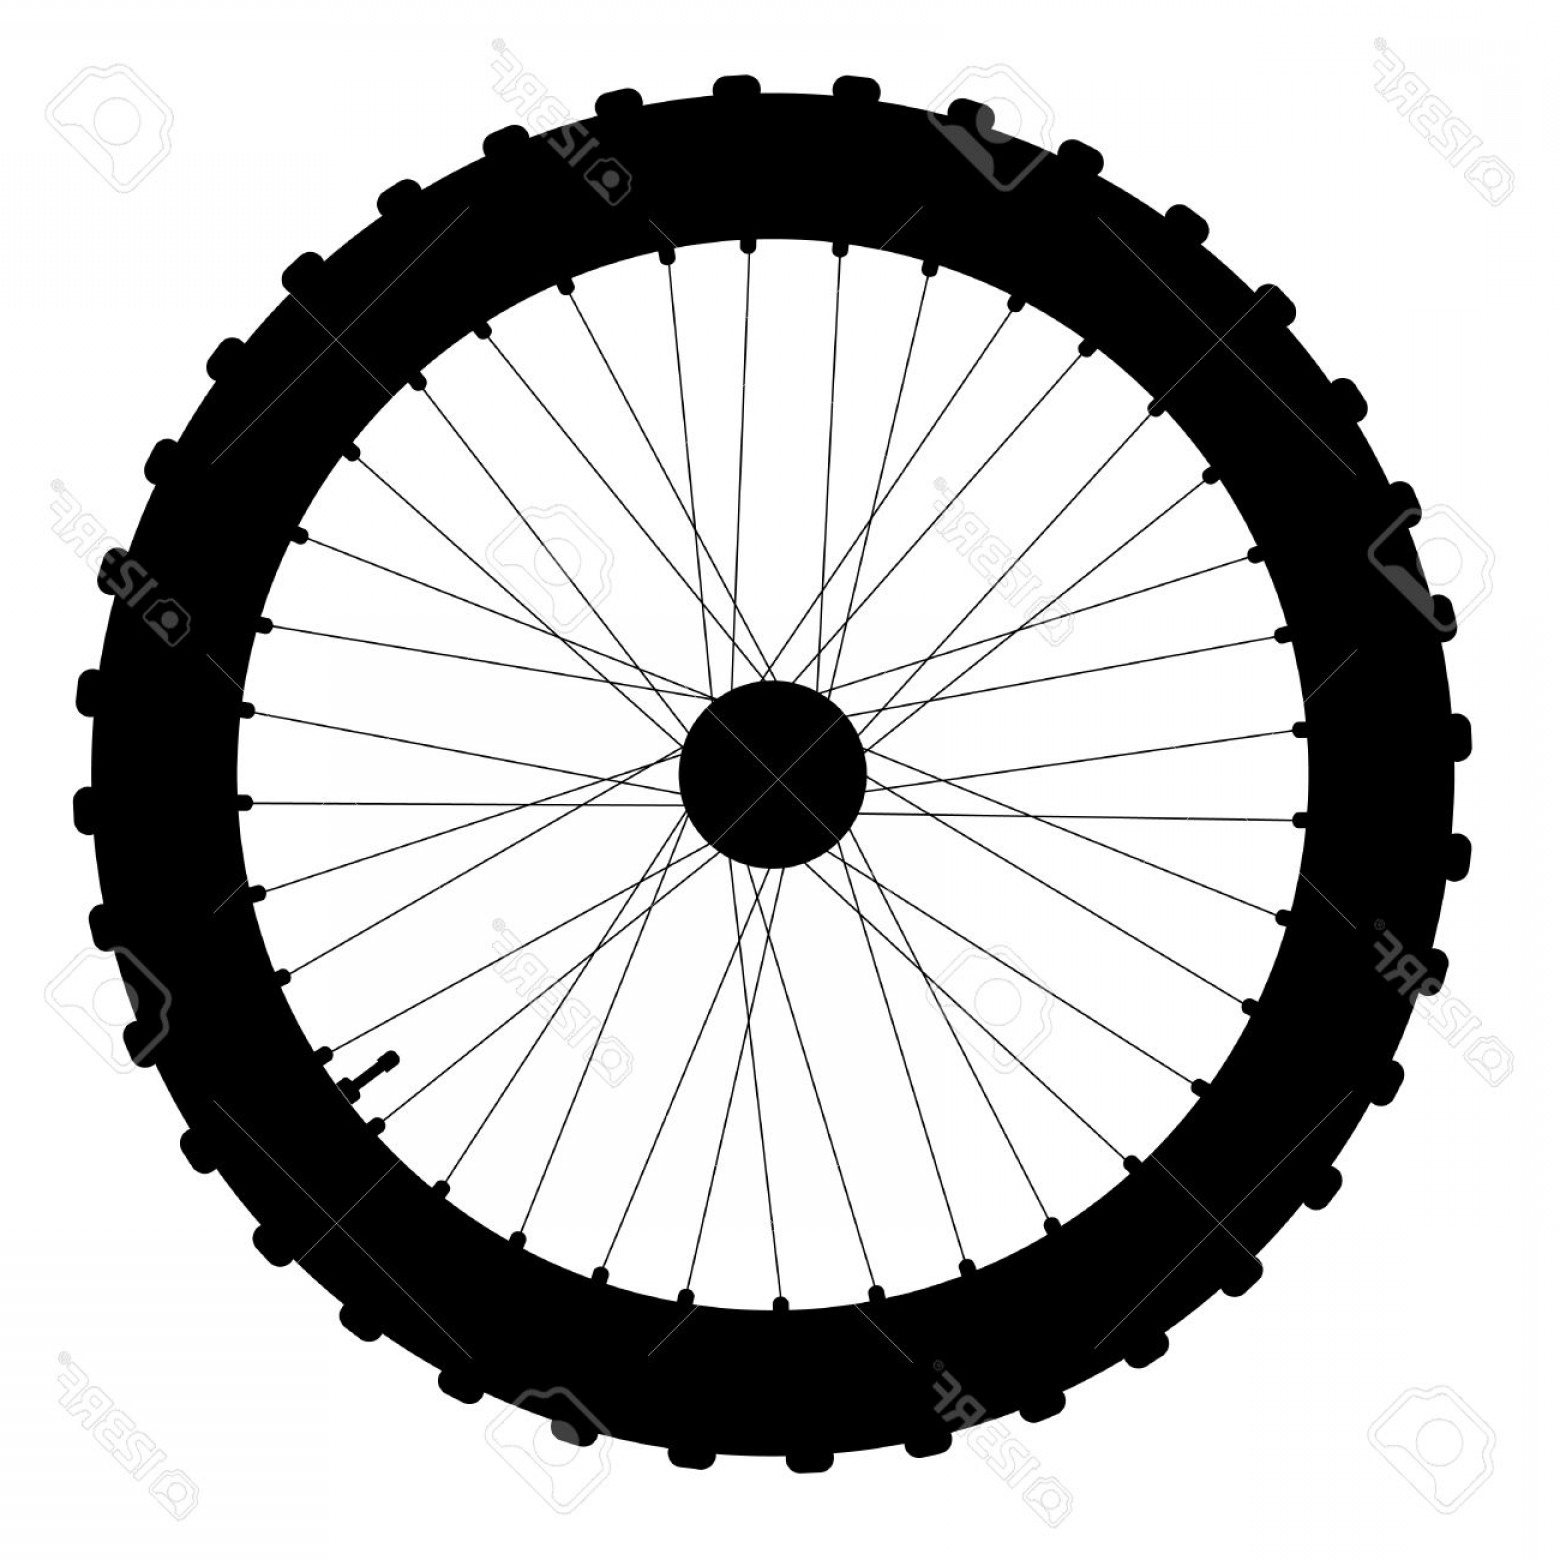 1560x1560 Photostock Vector A Knobly Tyre On A Bicycle Wheel With Valve And